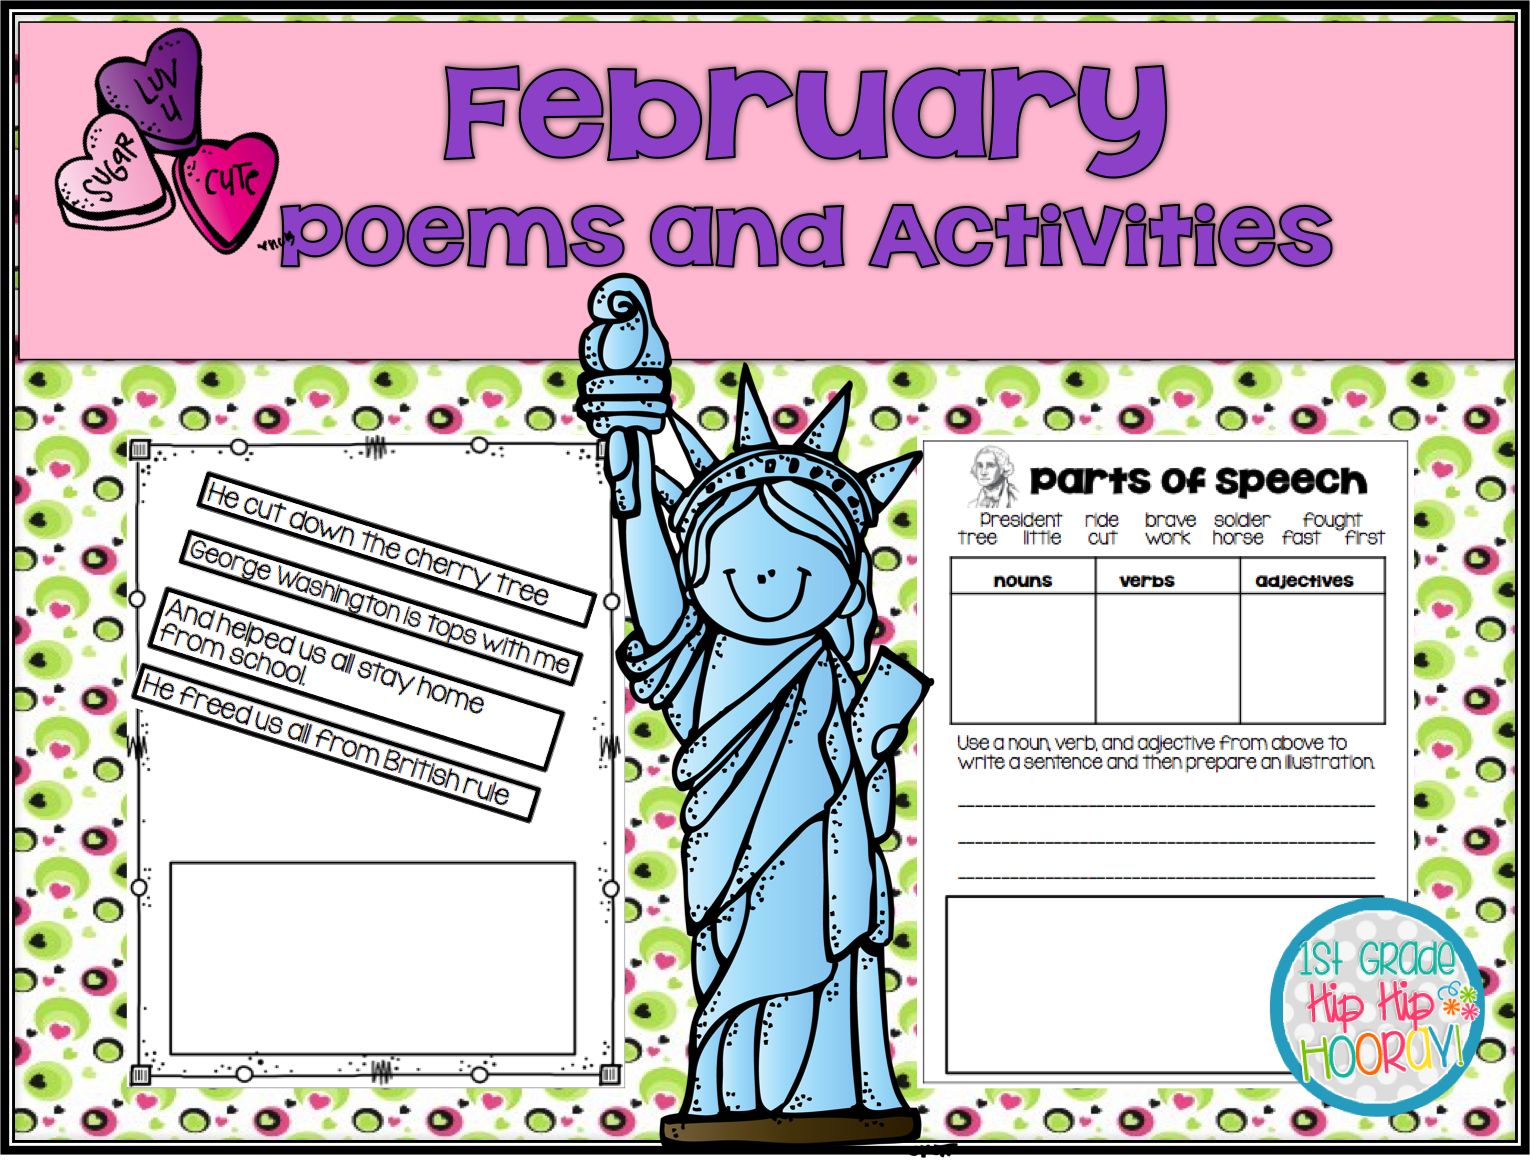 1st Grade Hip Hip Hooray February Poems And Activities